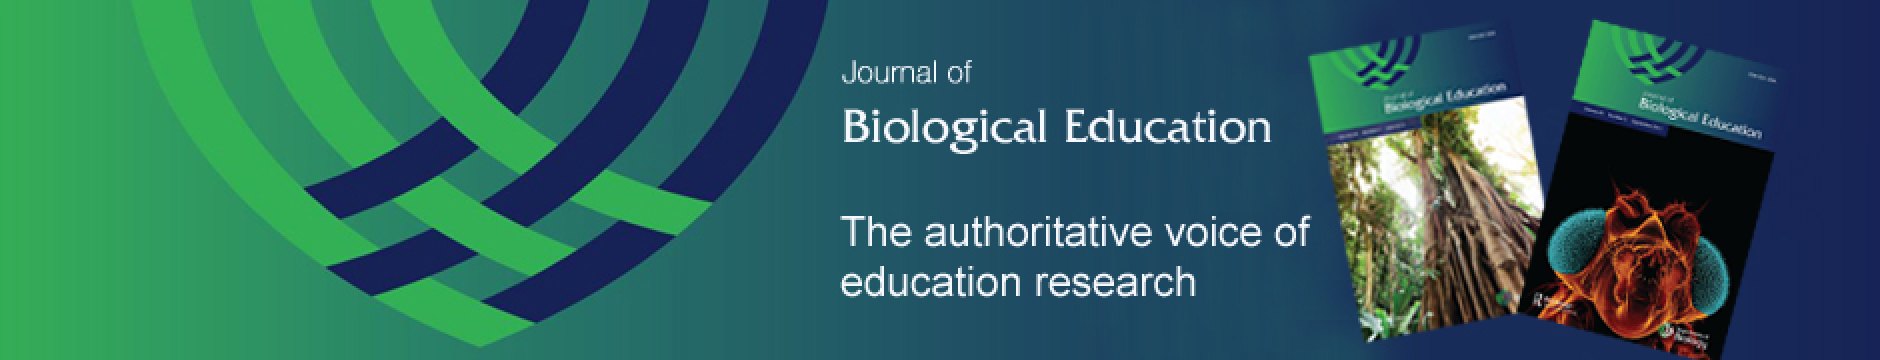 Journal of Biological Education